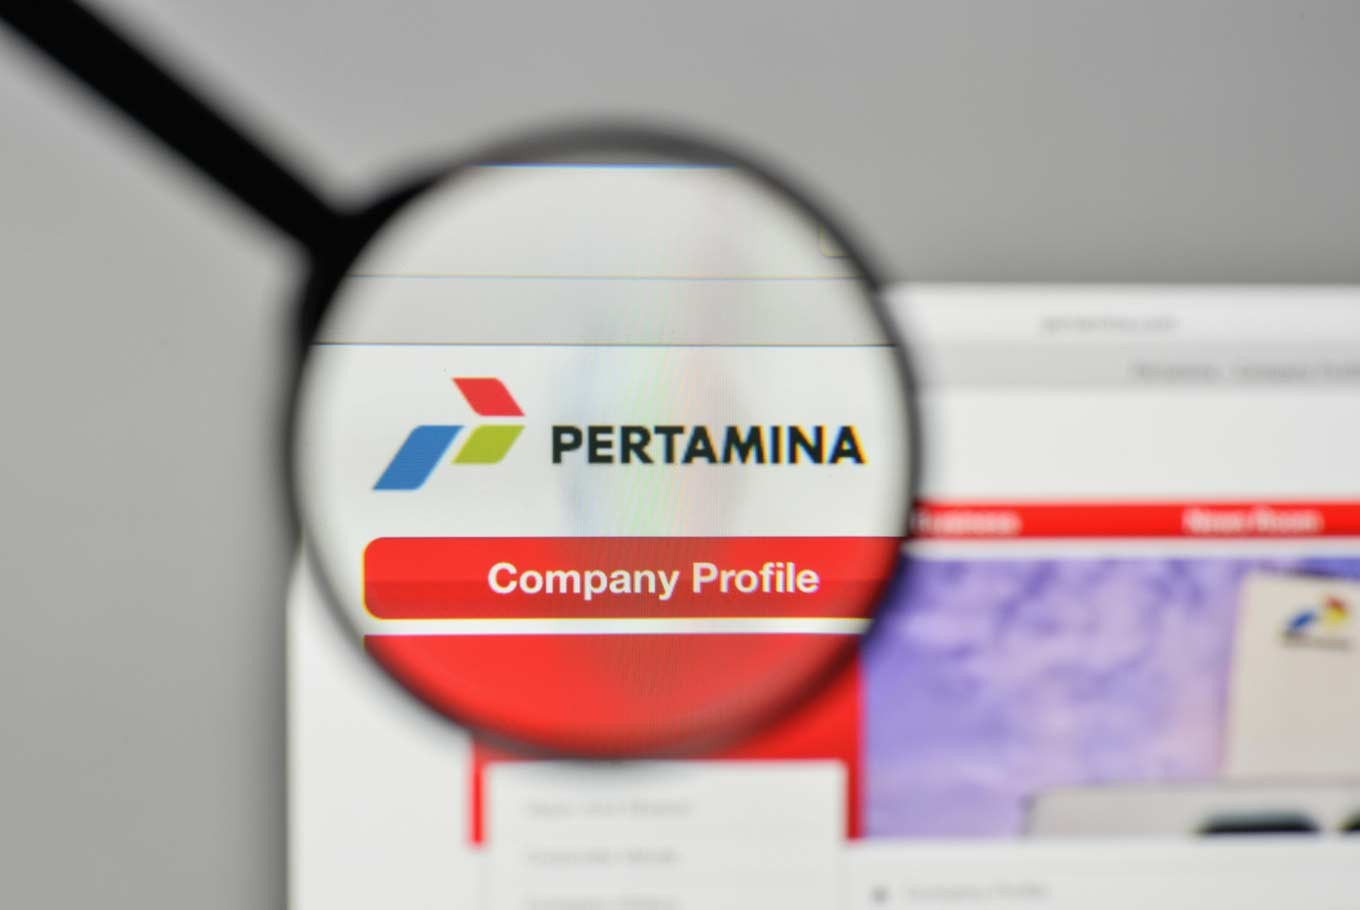 Pertamina profit plummets as govt insists on cheap fuel